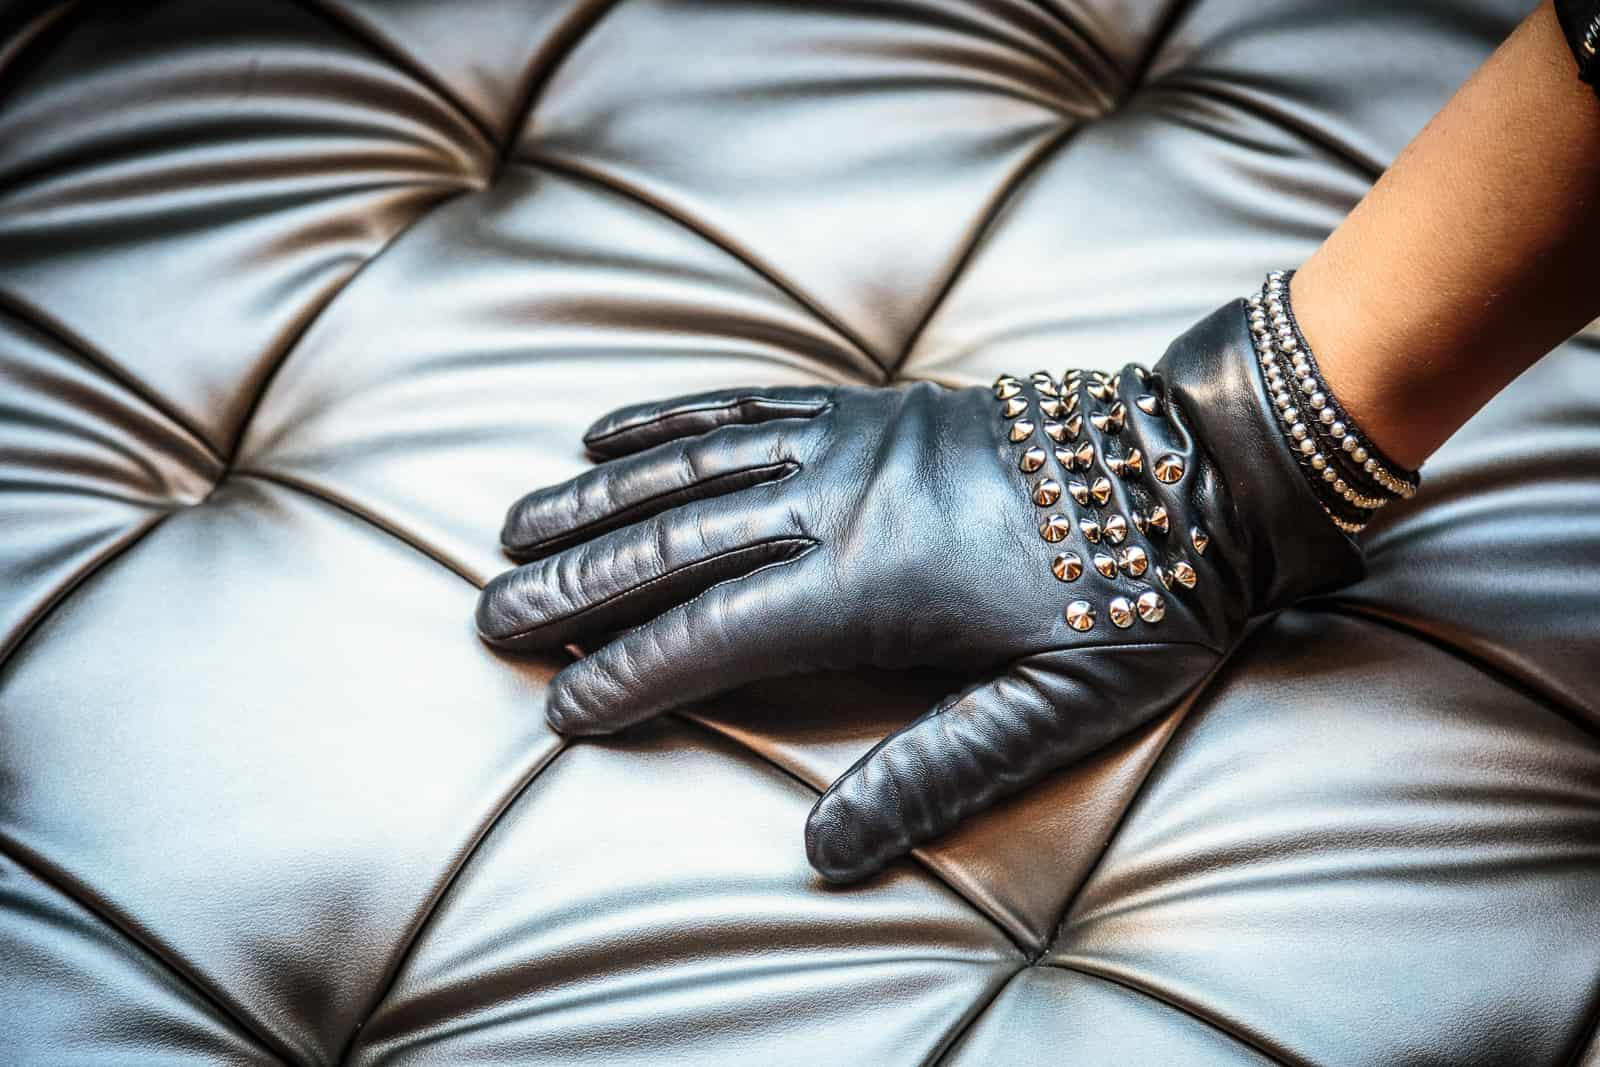 beau-gant-gloves-metal-studs-black-fashion2